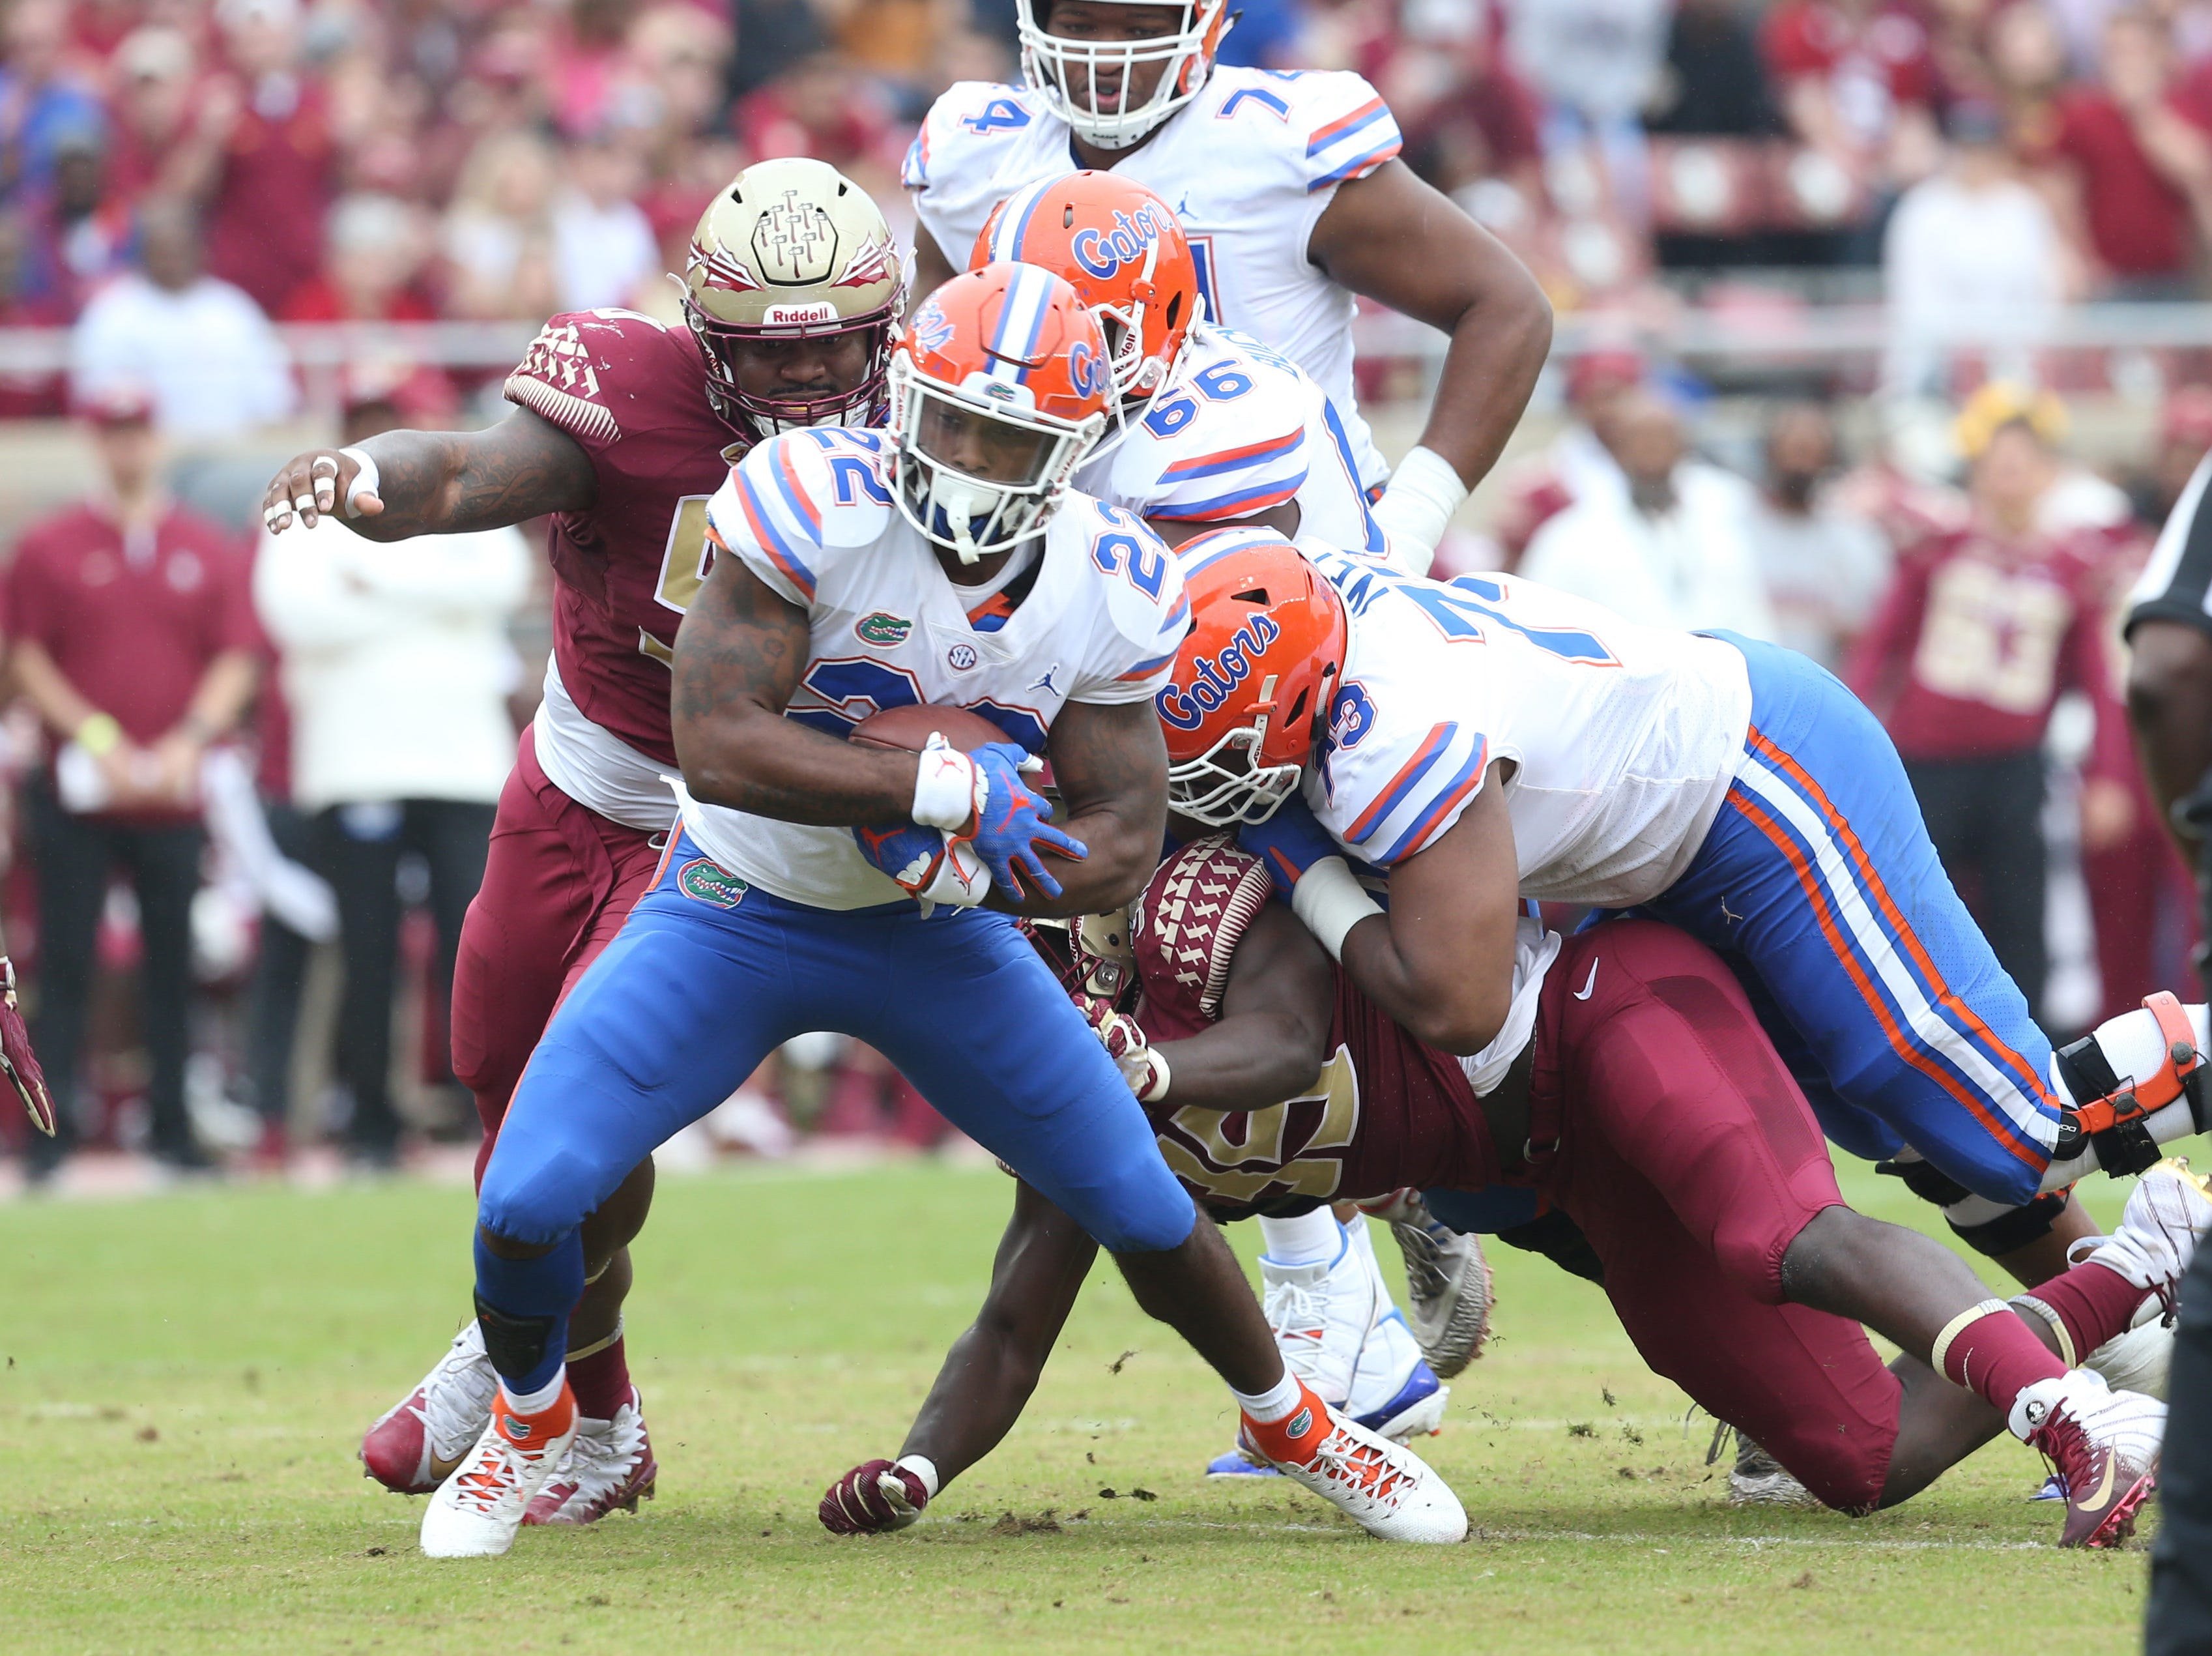 Florida Gators running back Lamical Perine (22) tries to fight off tackles from the defense as the Florida State Seminoles take on their rival the Florida Gators in college football at Doak S. Campbell Stadium, Saturday, Nov. 24, 2018.